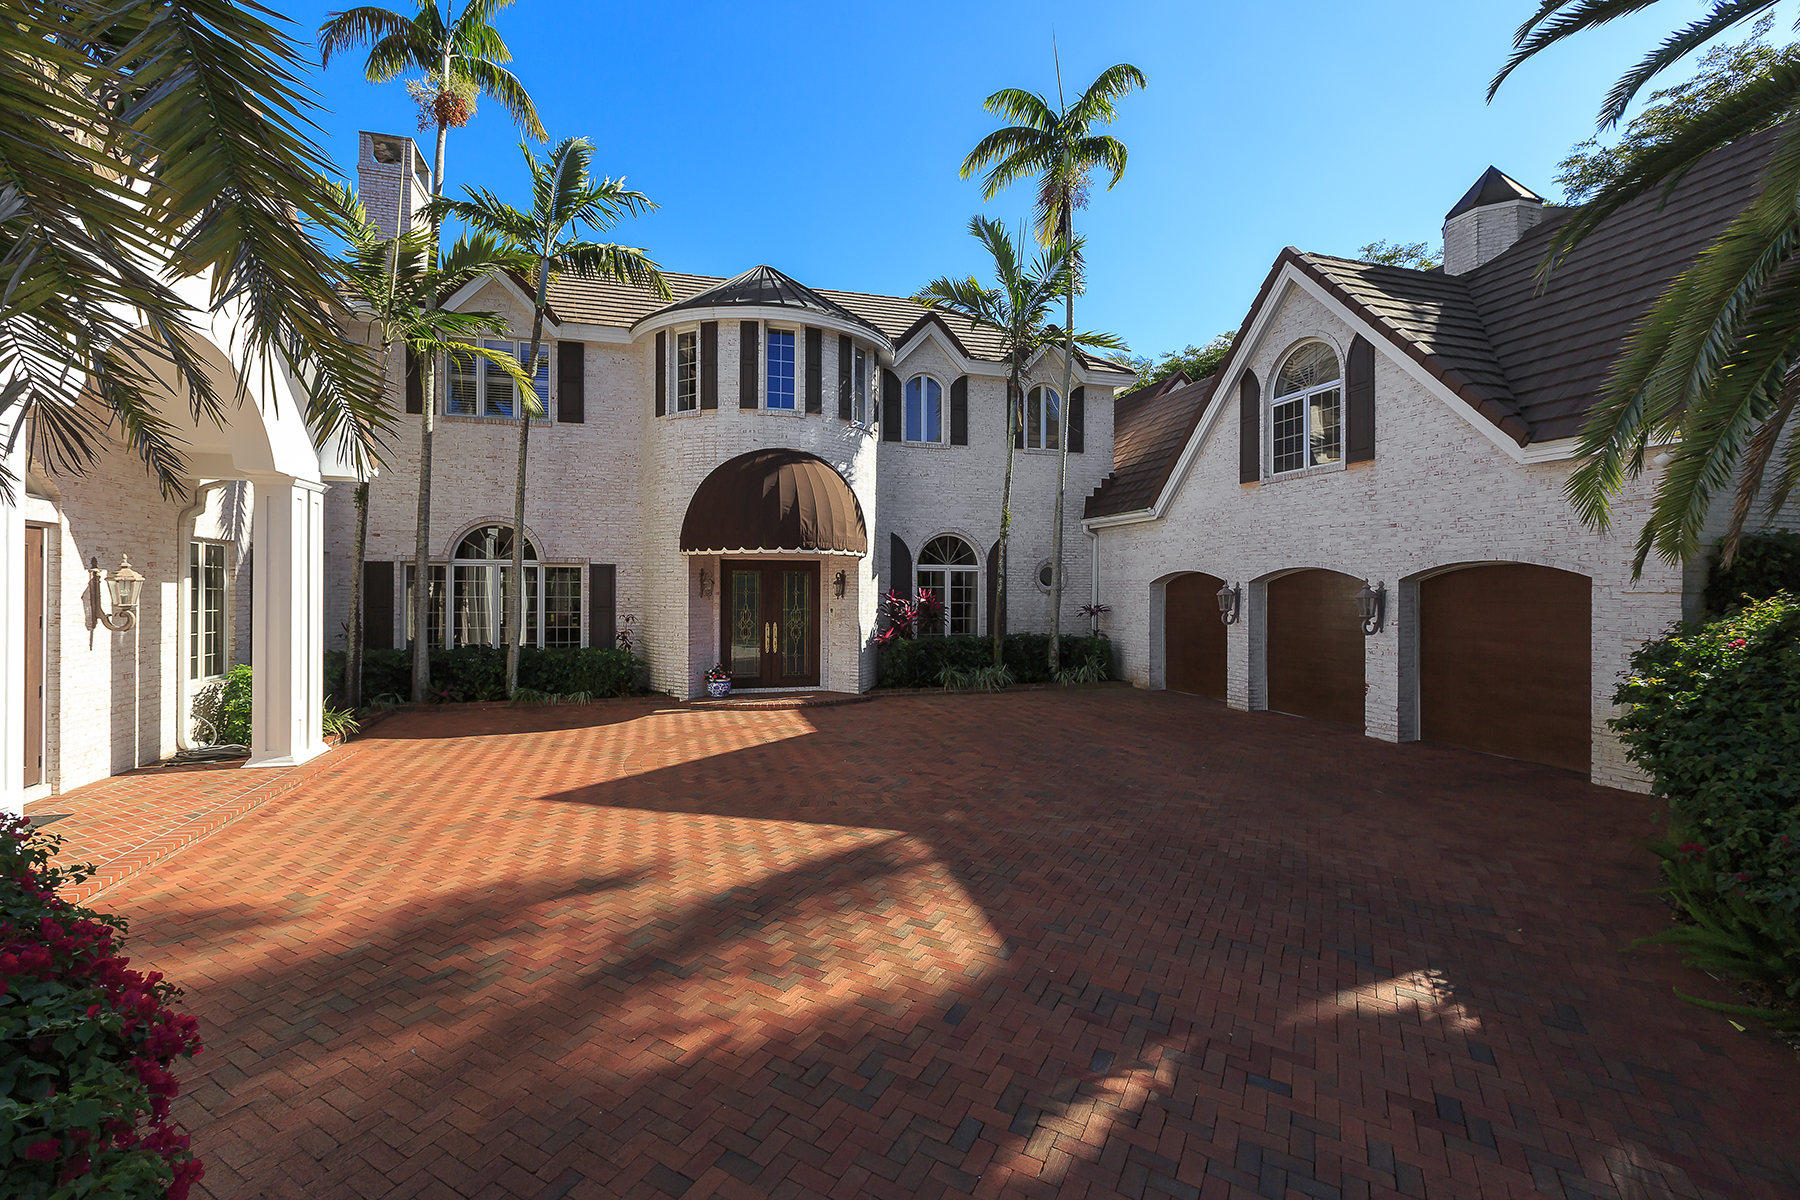 Casa Unifamiliar por un Venta en PELICAN BAY - BAY COLONY SHORES 356 Cromwell Ct Naples, Florida, 34108 Estados Unidos